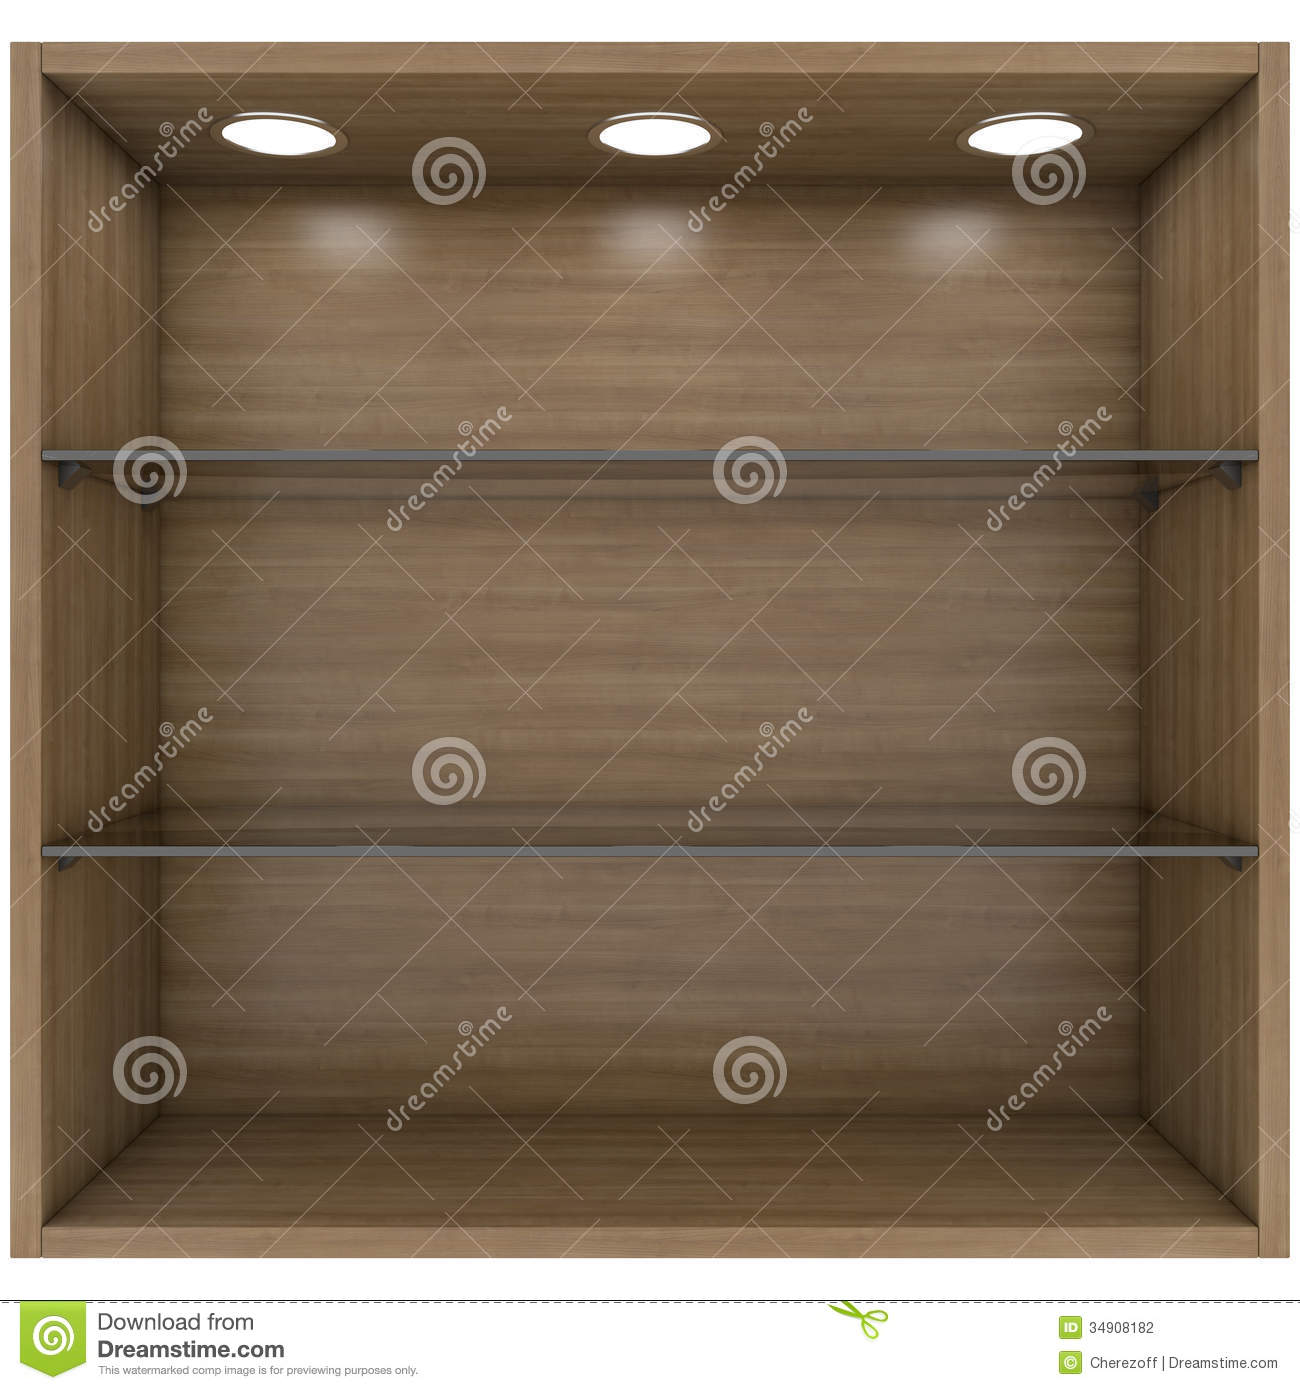 Wooden And Glass Shelves With Built-in Lights Stock ...